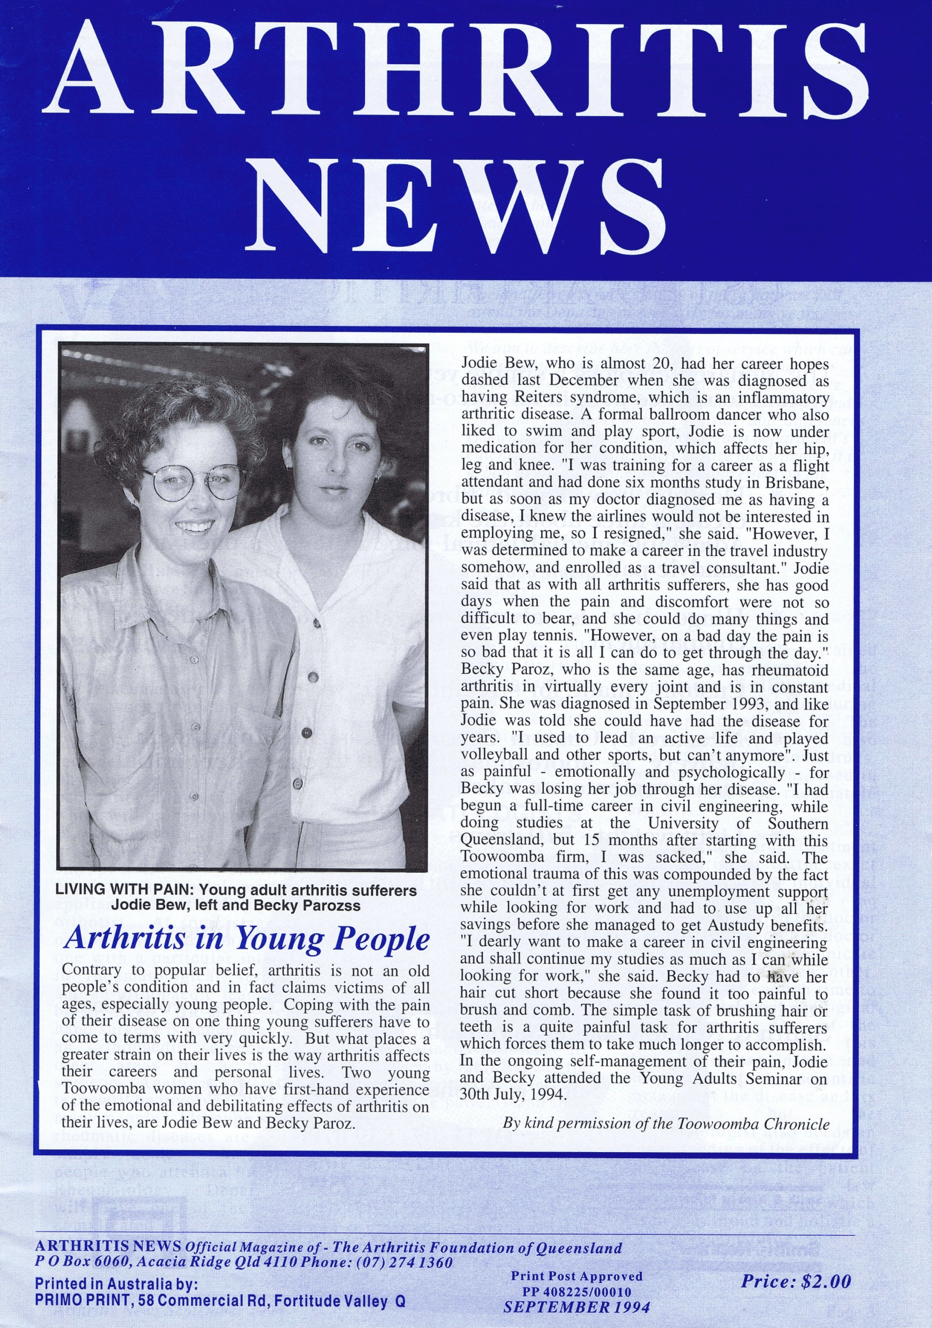 Arthritis News, 1994, with Bek Paroz